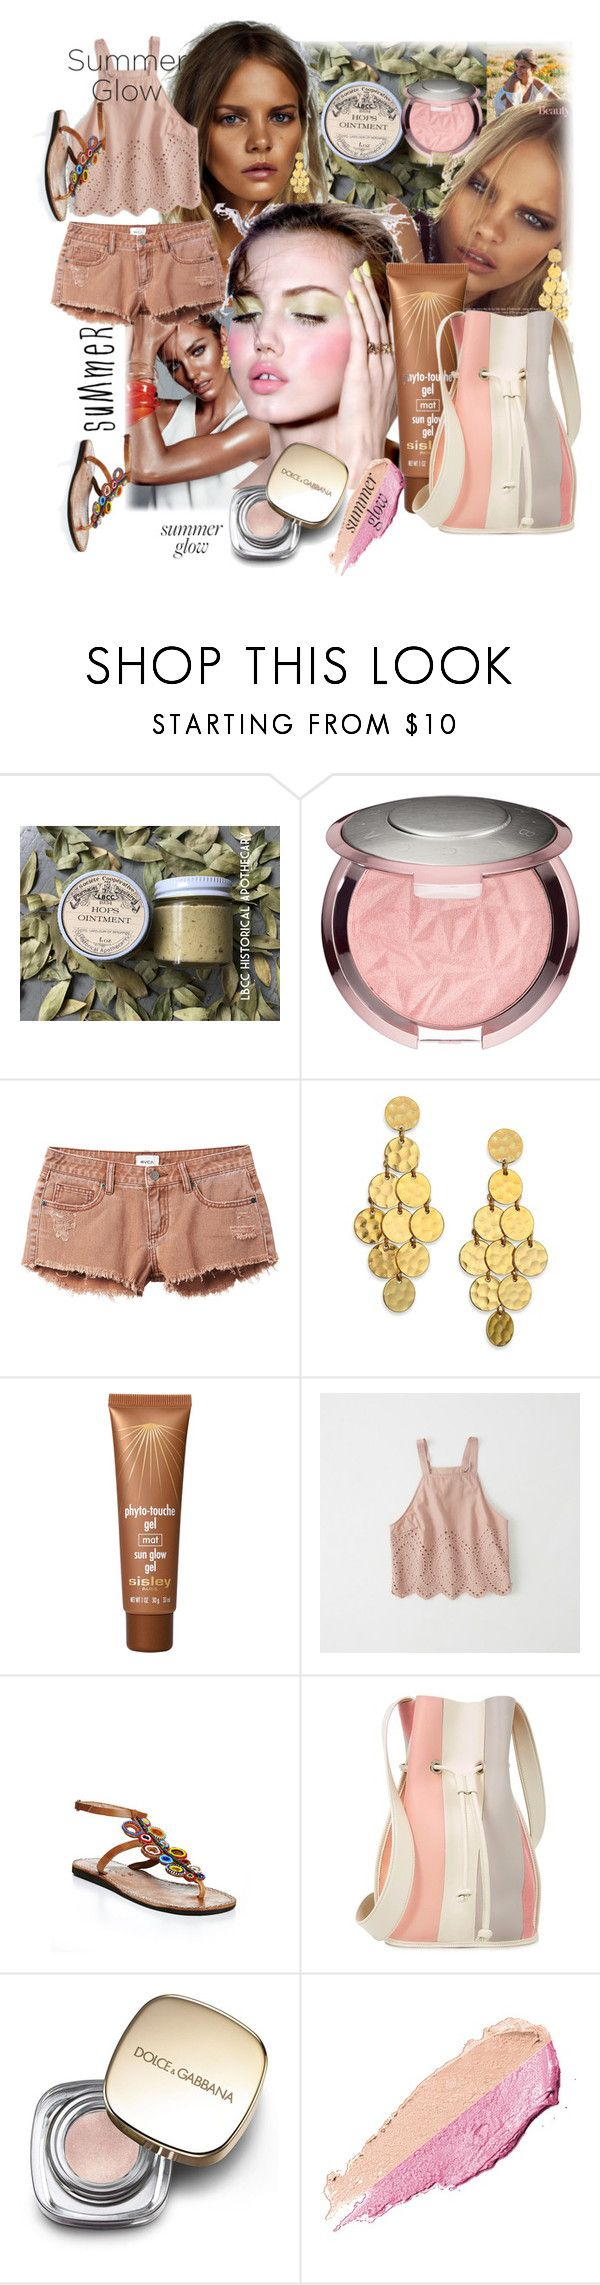 """summer glow"" by hannah353 ❤ liked on Polyvore featuring beauty, Urban Outfitters, RVCA, Stephanie Kantis, Sisley, Abercrombie & Fitch, Laidback London, 10 Crosby Derek Lam, Dolce&Gabbana and By Terry"